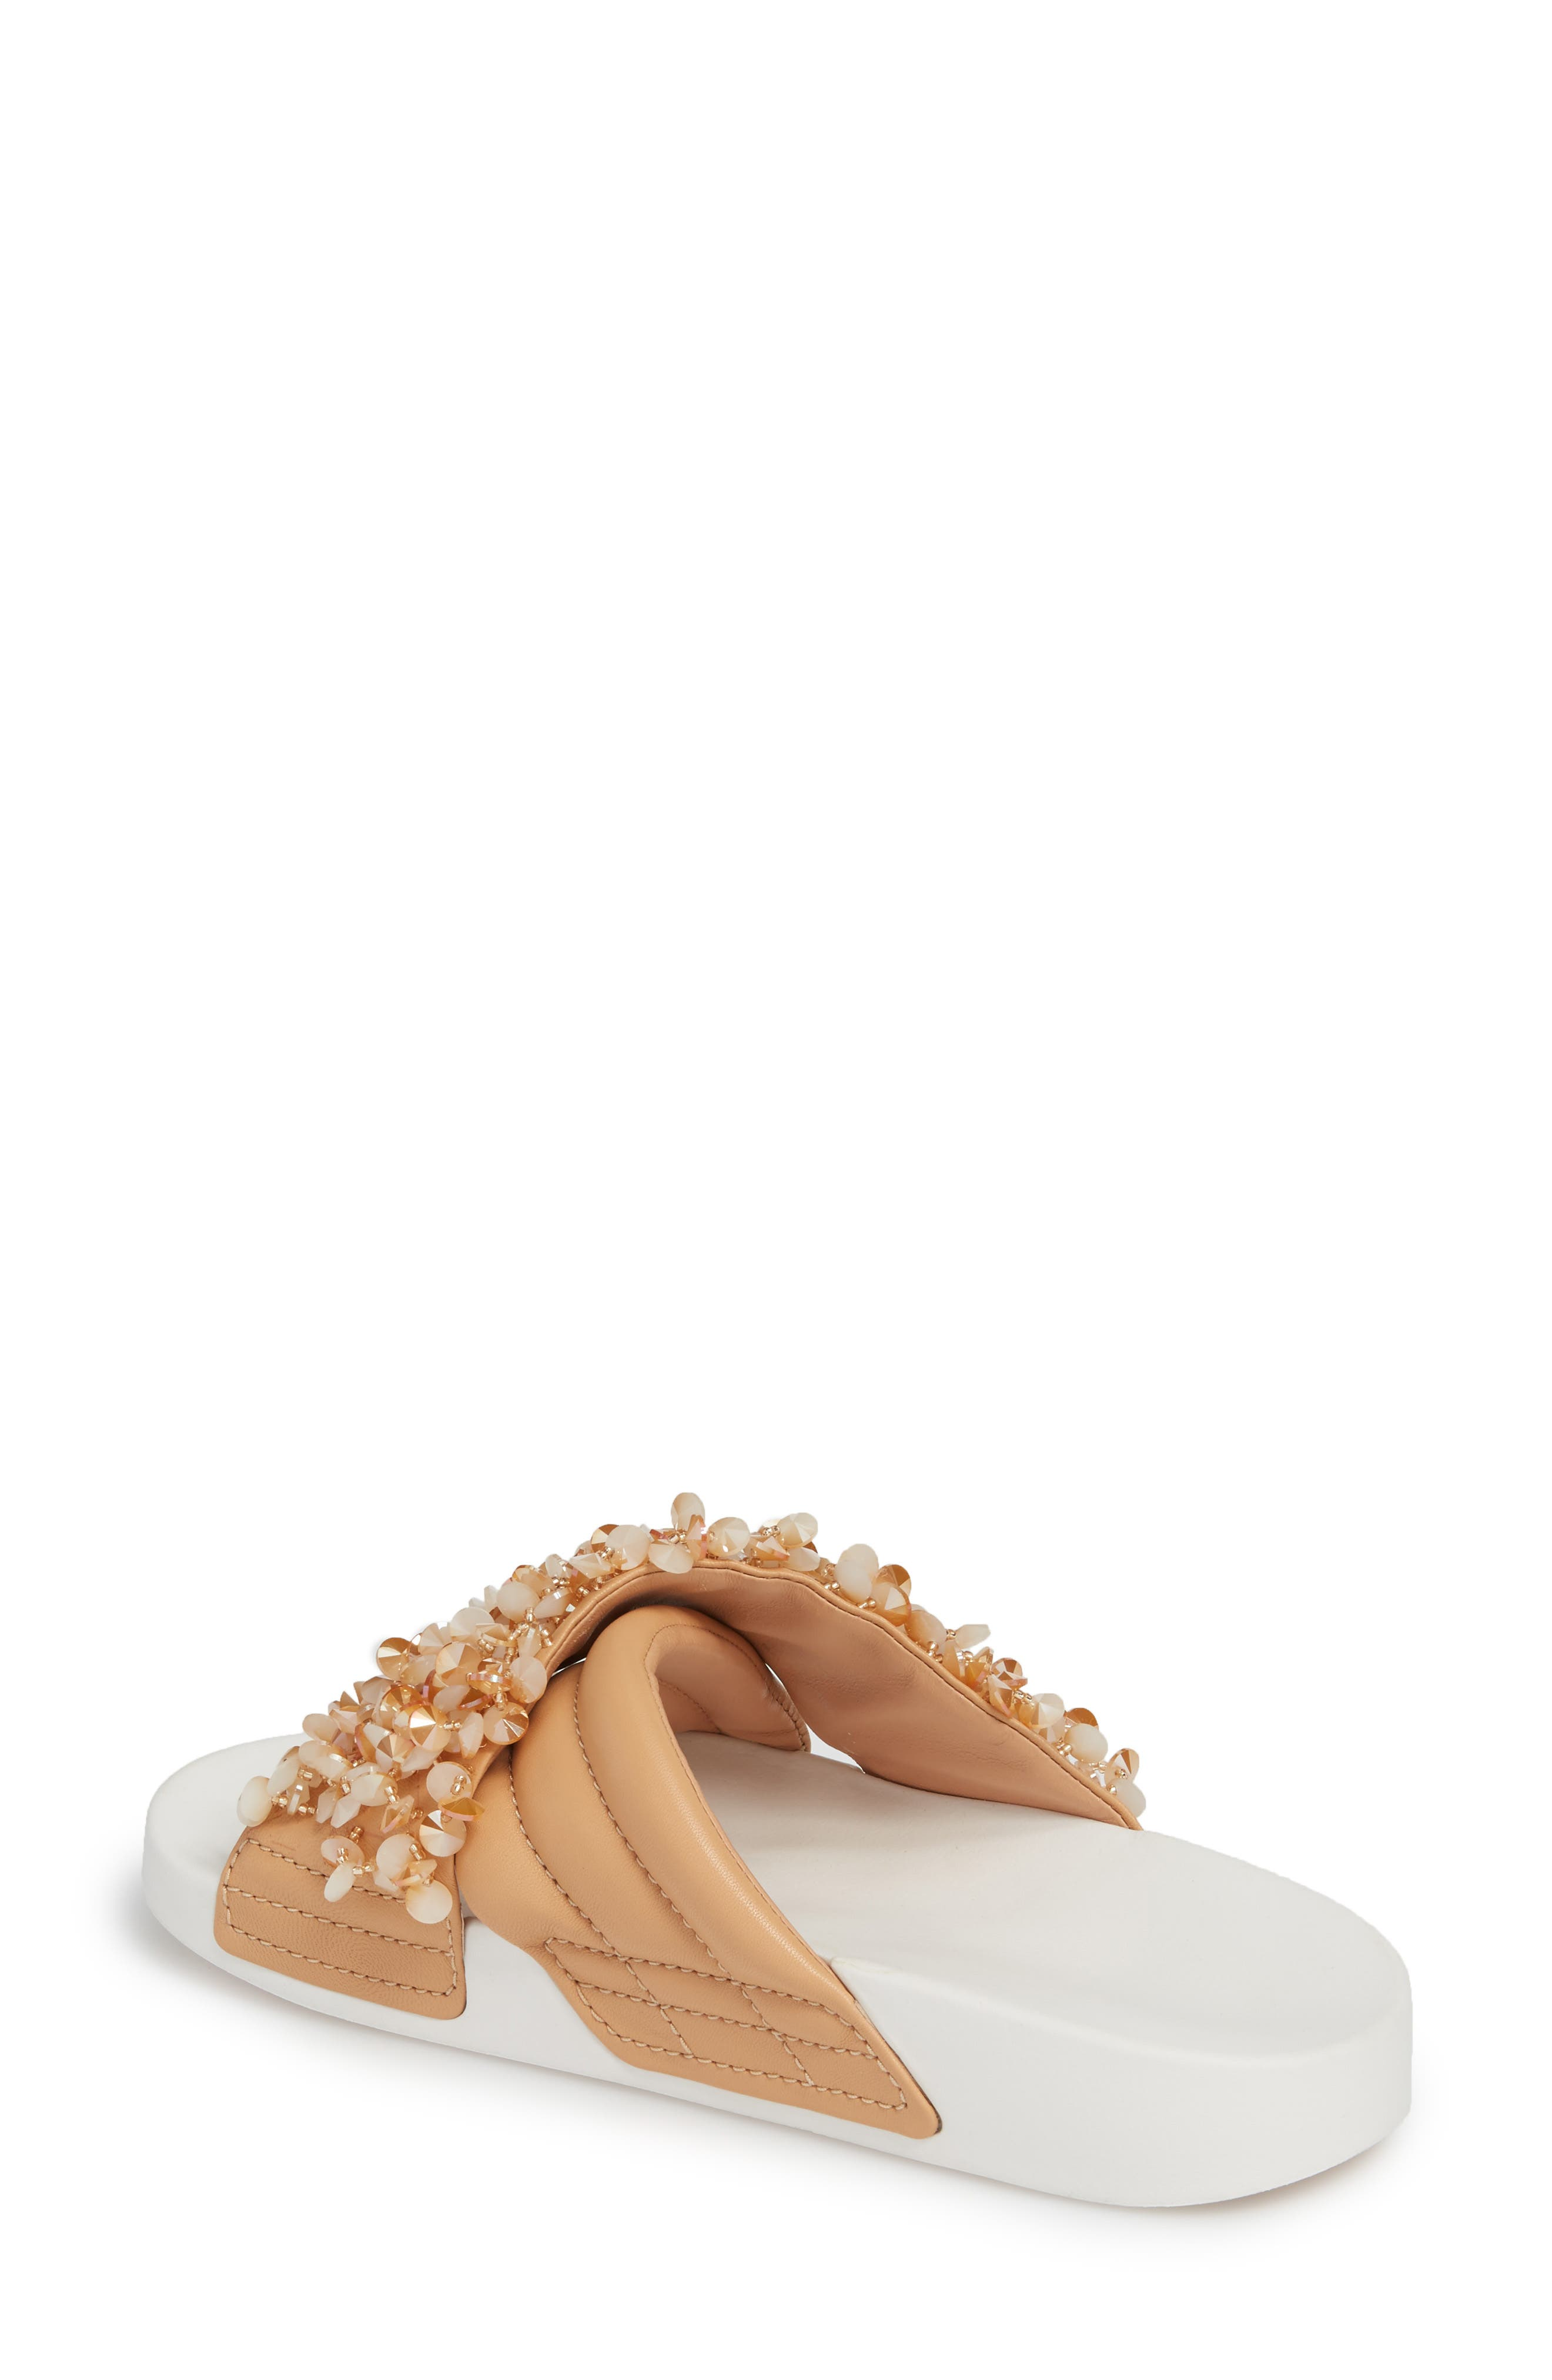 Logan Embellished Slide Sandal,                             Alternate thumbnail 2, color,                             Natural Vachetta/ Cassia